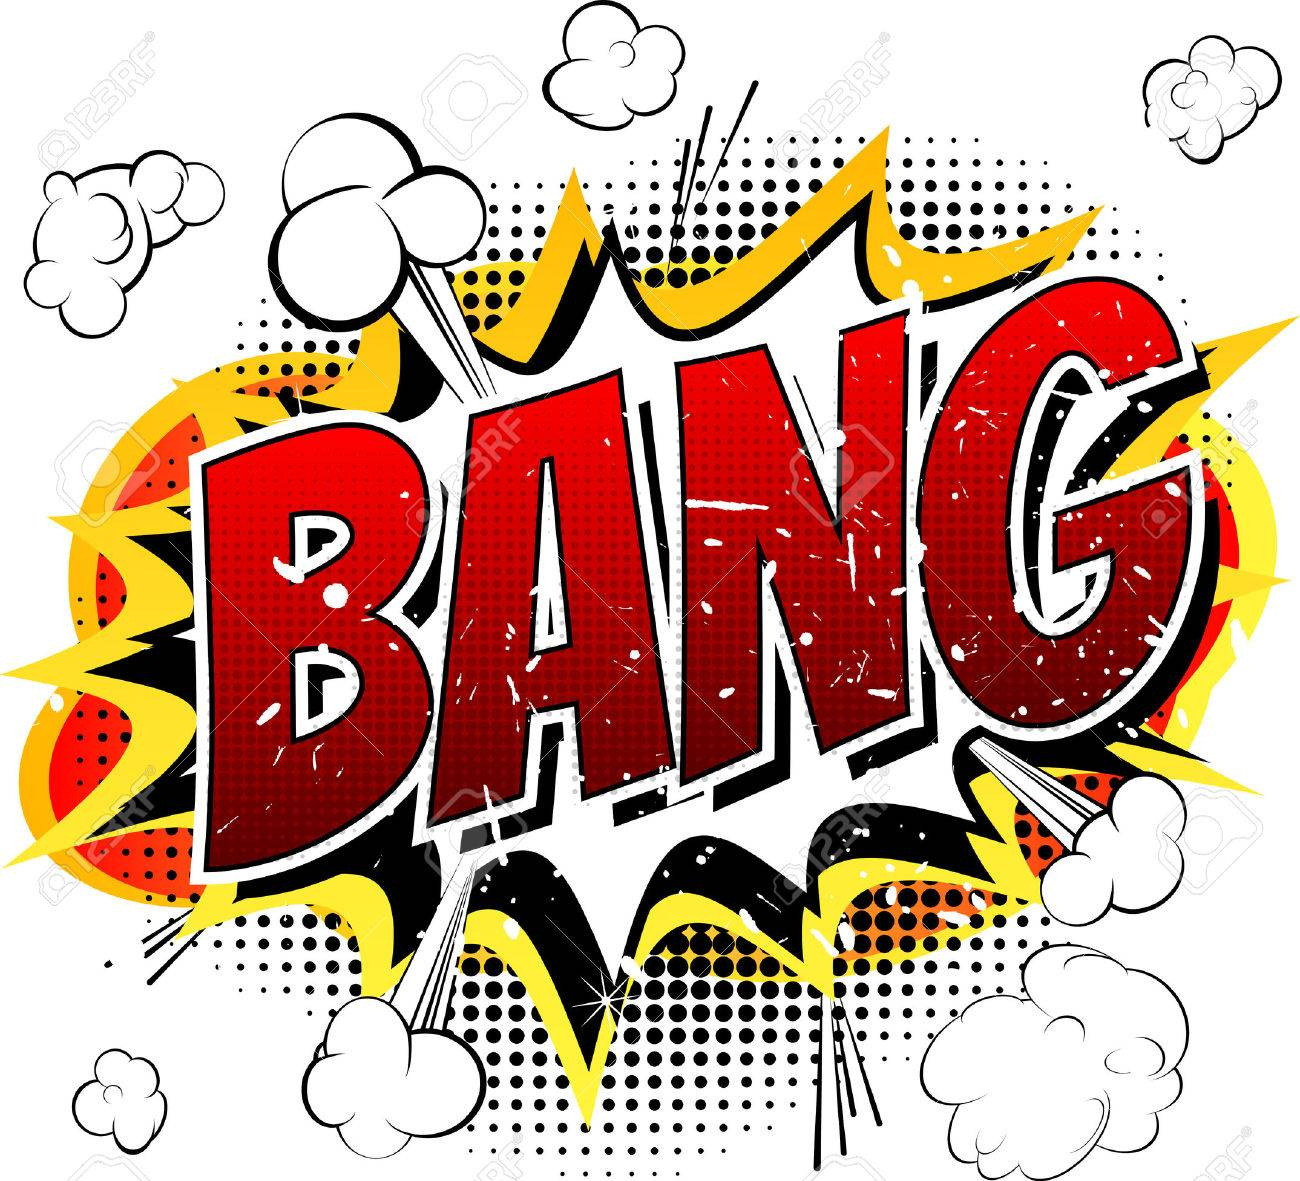 Bang Comic book cartoon explosion isolated on white background. - 40970933